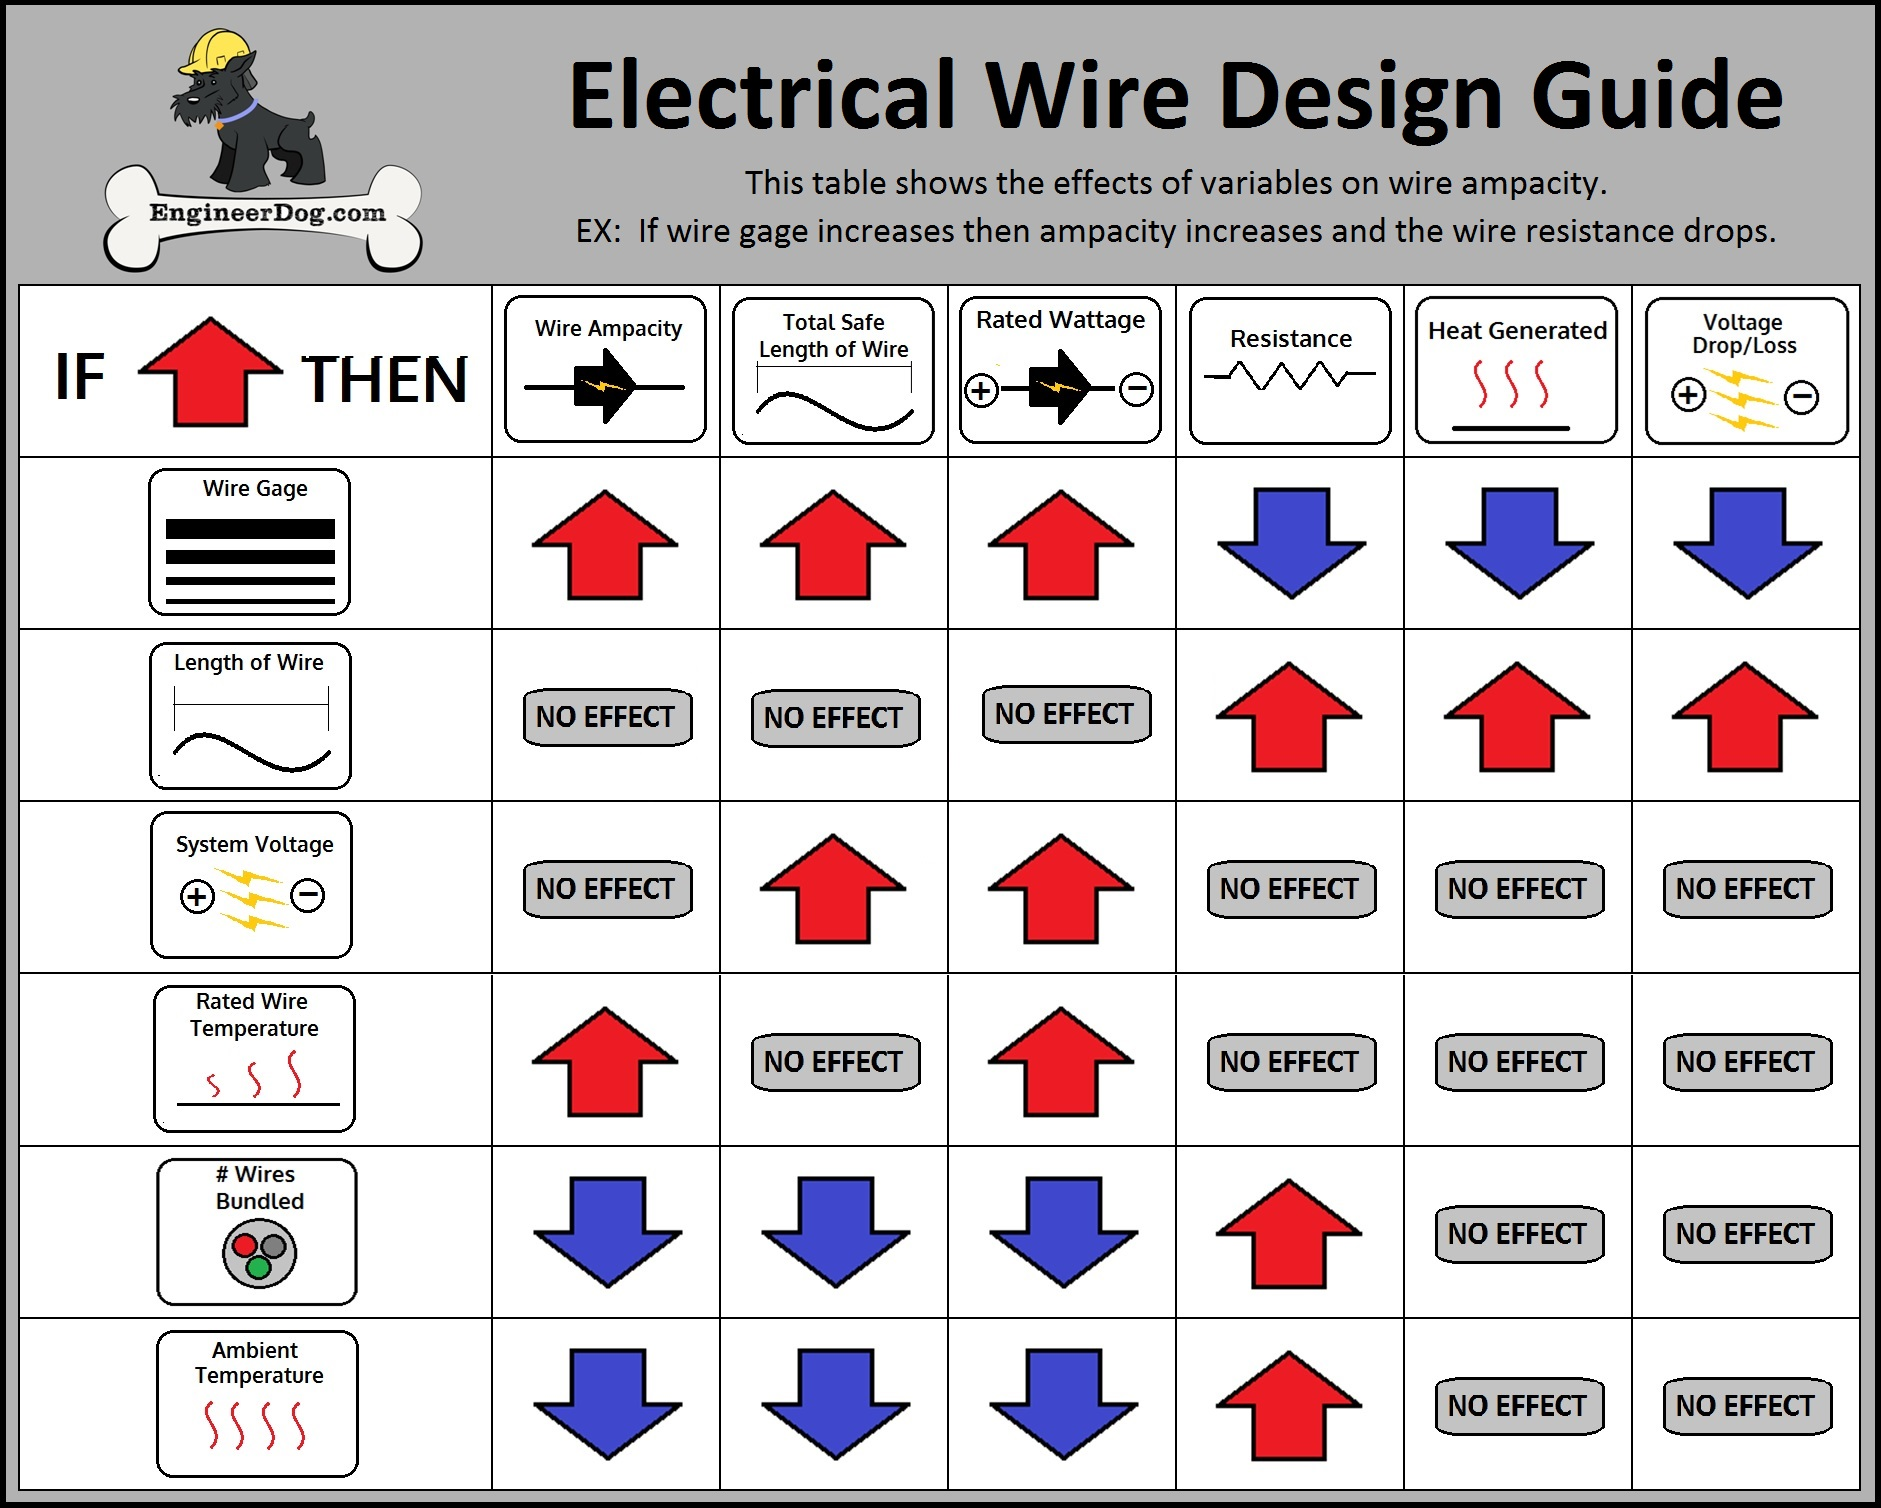 Wire amp guide today manual guide trends sample free electrical wire gauge sizing calculator engineerdog rh engineerdog com 100 amp wire size chart wire gauge amp chart keyboard keysfo Choice Image